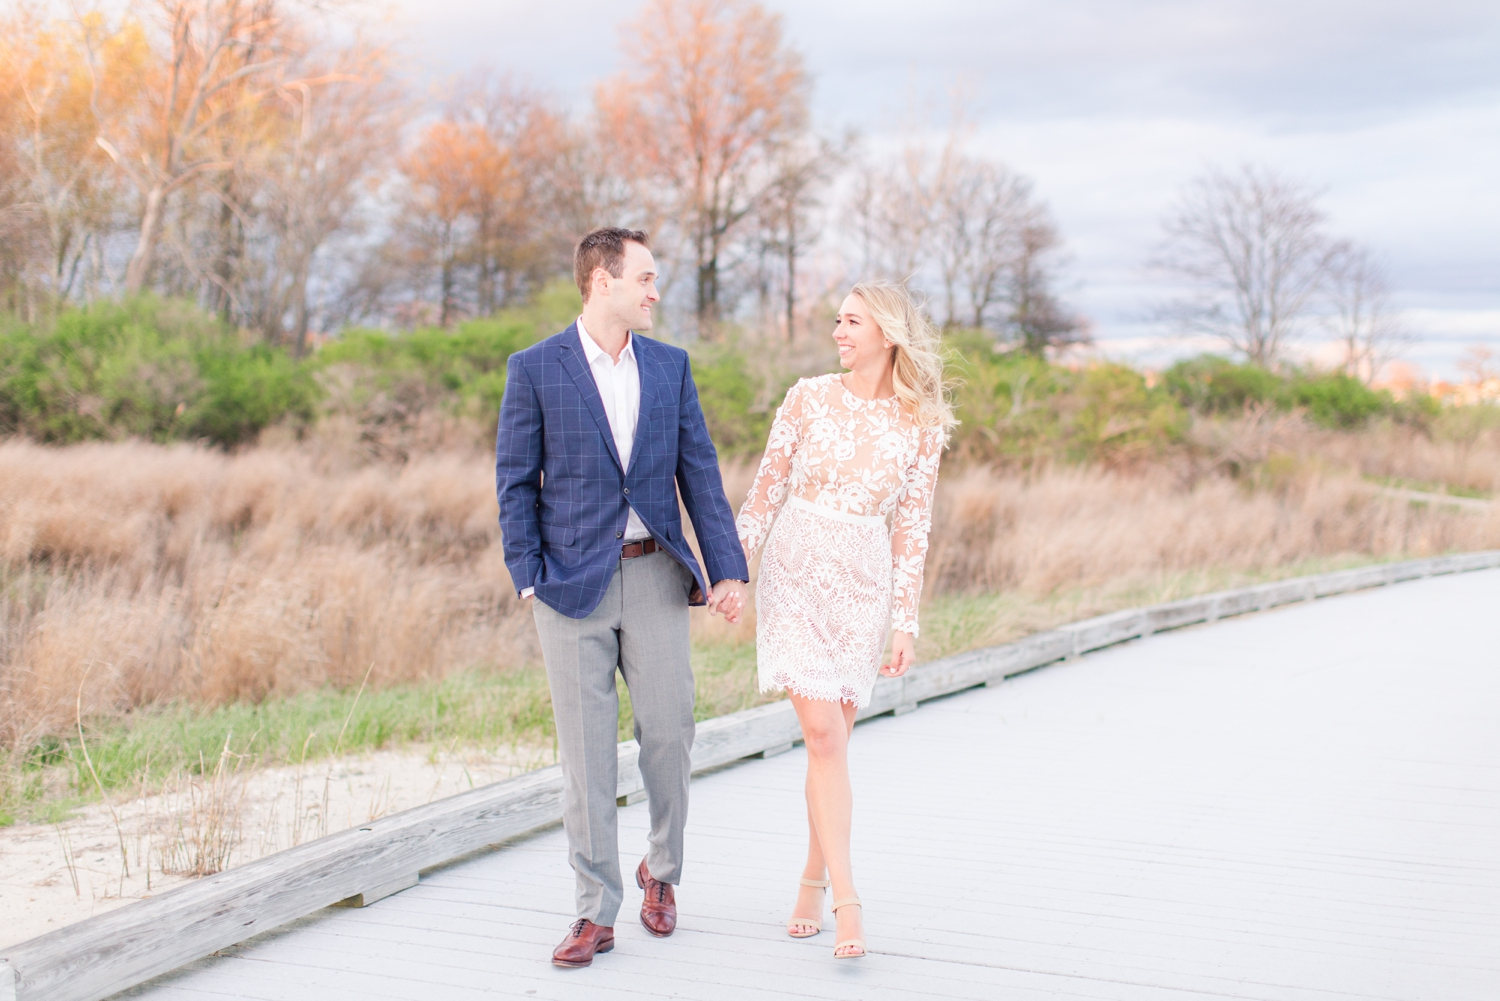 sterling-library-yale-university-engagement-session-new-haven-connecticut-wedding-photographer-andrea-chris-shaina-lee-photography-photo